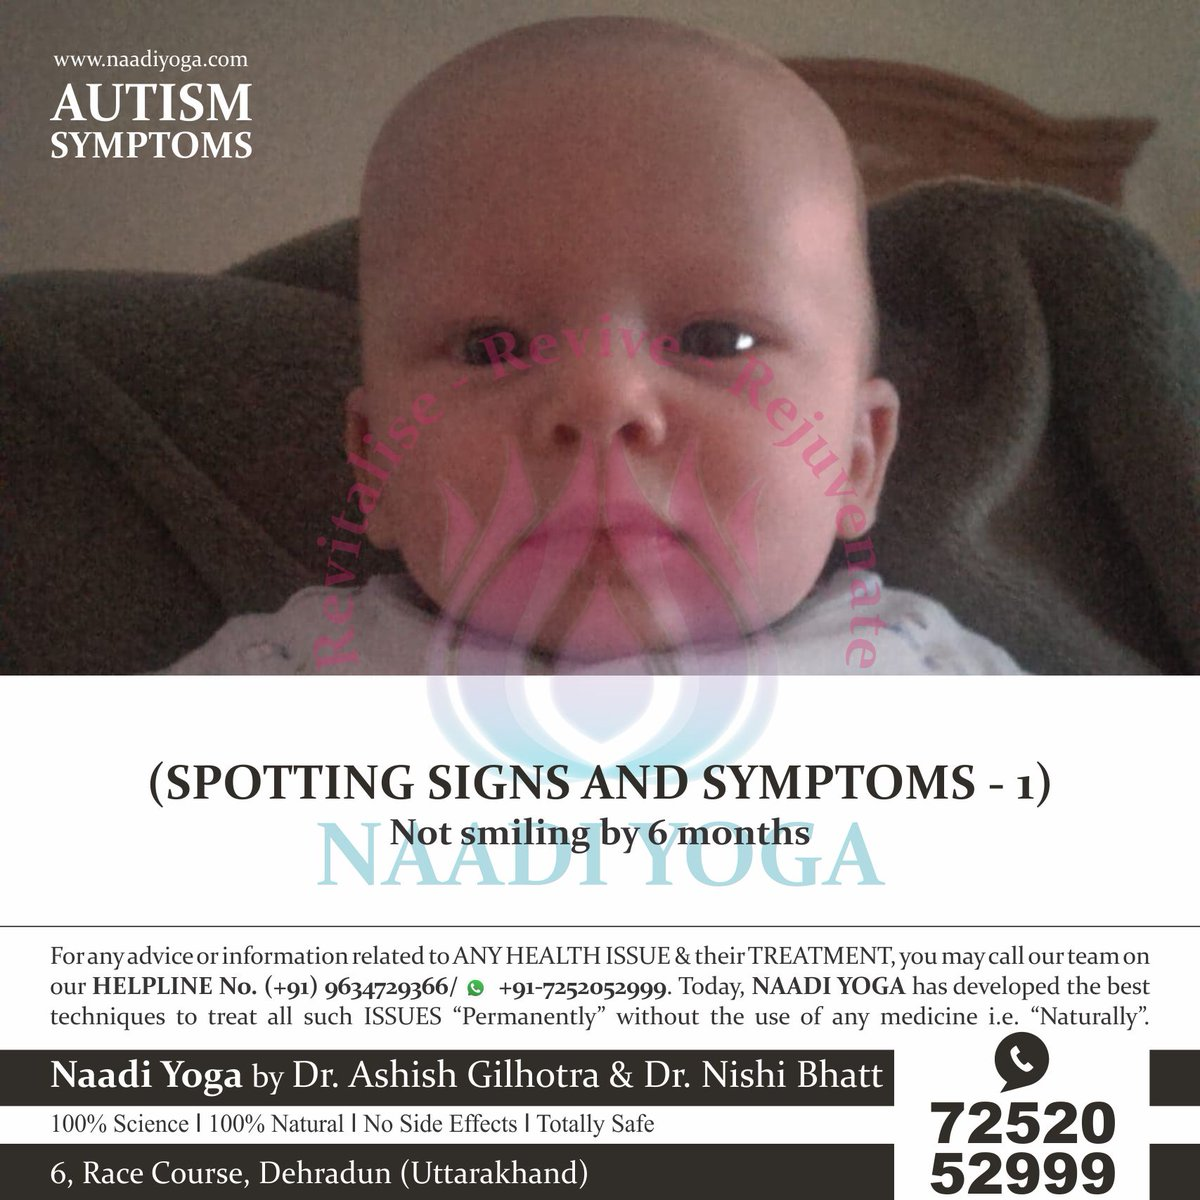 AUTISM SYMPTOMS (Spotting Signs and Symptoms- SYMPTOM 1 - Not Smiling by 6 months) - https://www.facebook.com/NaadiYoga/photos/a.638695106154688/2576435692380610/?type=3&theater …#naadiyoga #yoga #accupressure #autism #pervasive #developmentaldisorder #autisticdisorder #treatment #dehradun #india #london #drashishgilhotra #communication #symptoms